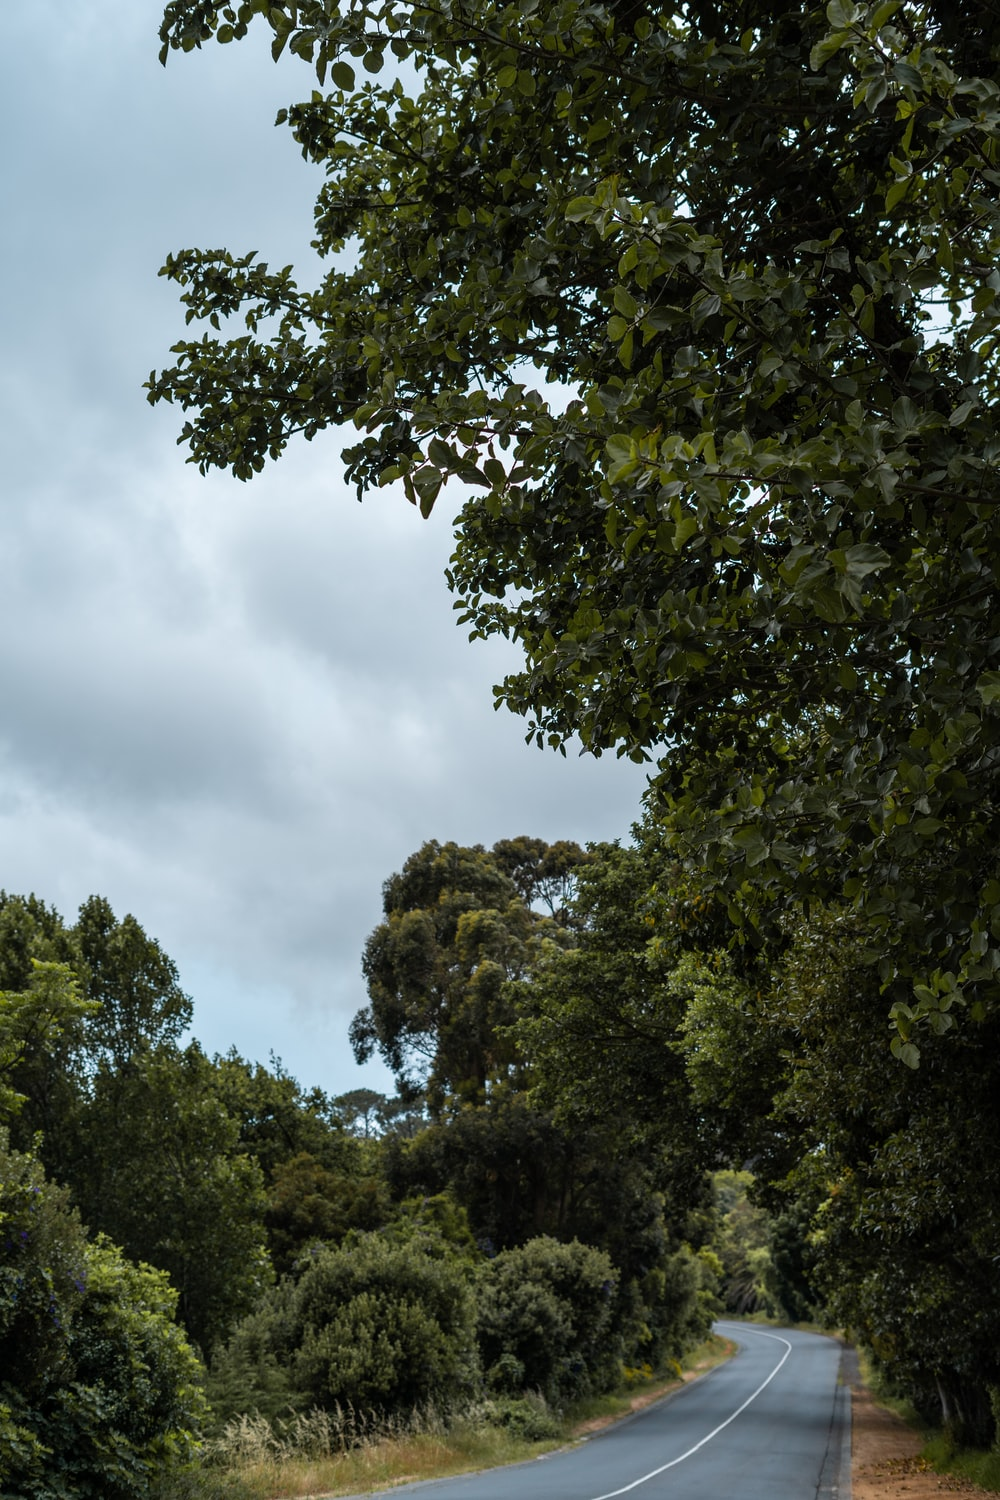 green trees under white clouds during daytime